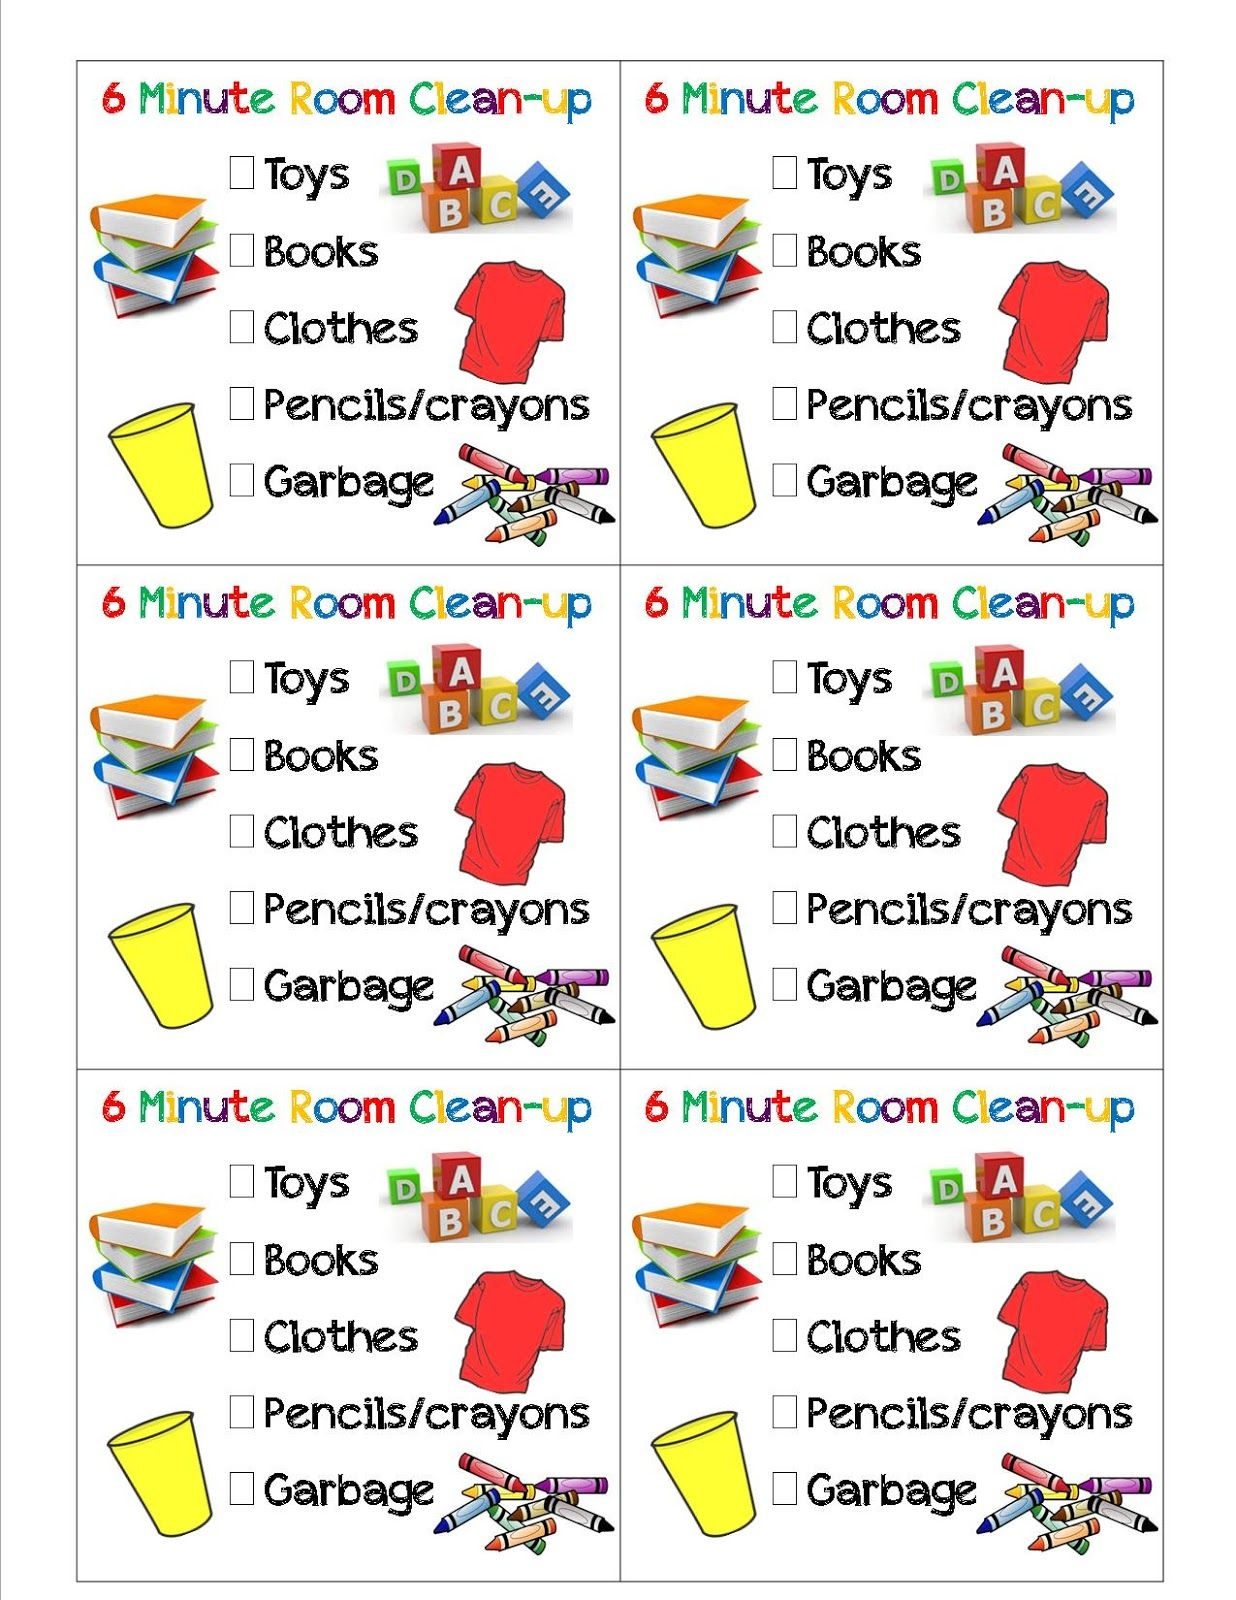 clean your room clip art kids clean room clip art the 6 minute room clean up  [ 1236 x 1600 Pixel ]